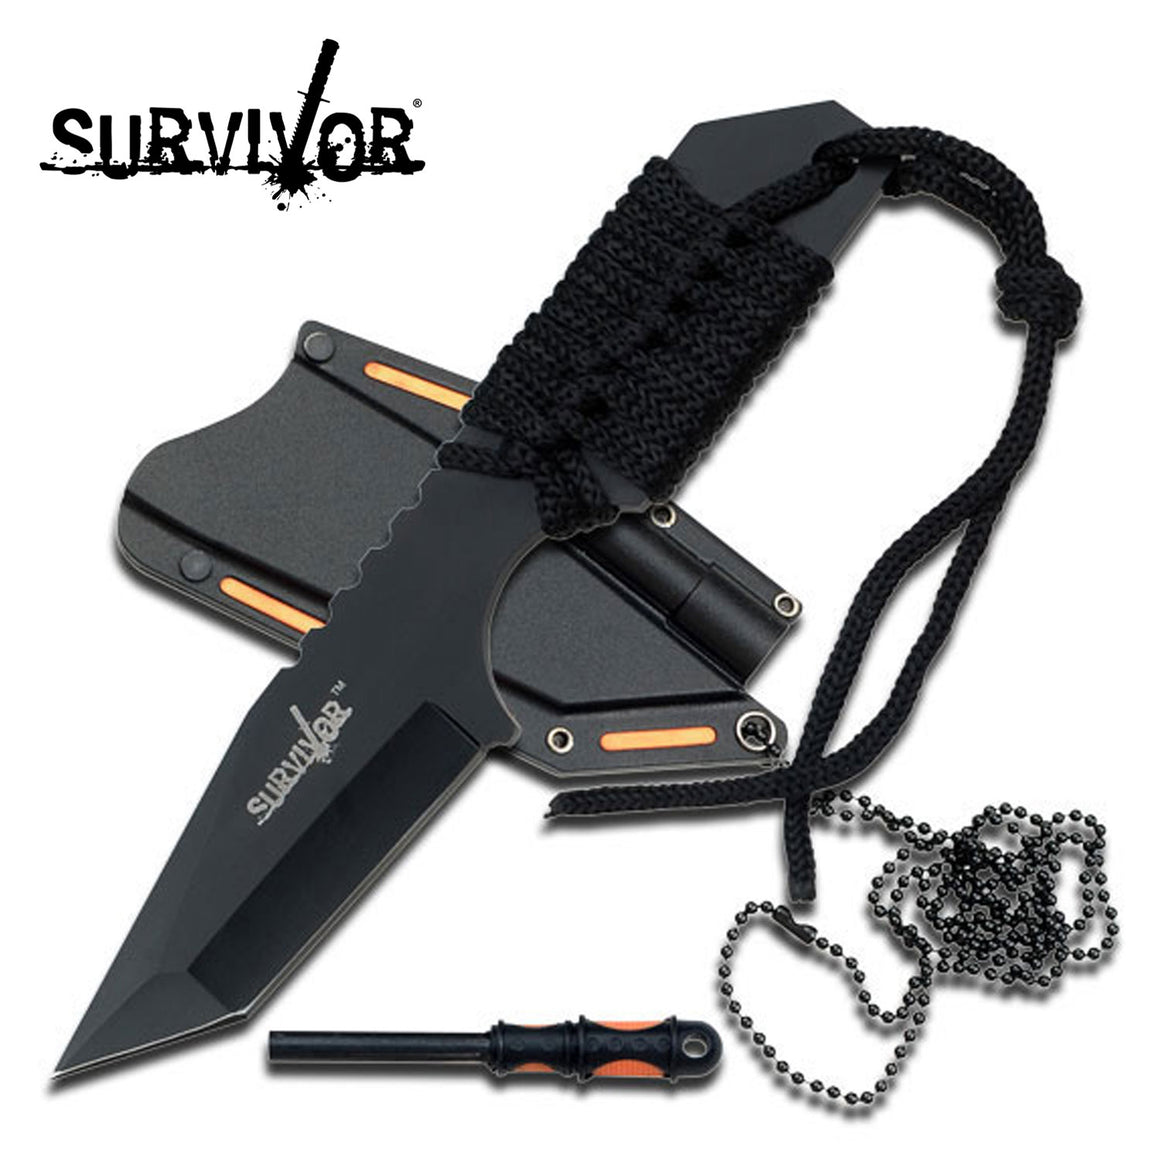 Survivor HK-762BK Fixed Blade Knife